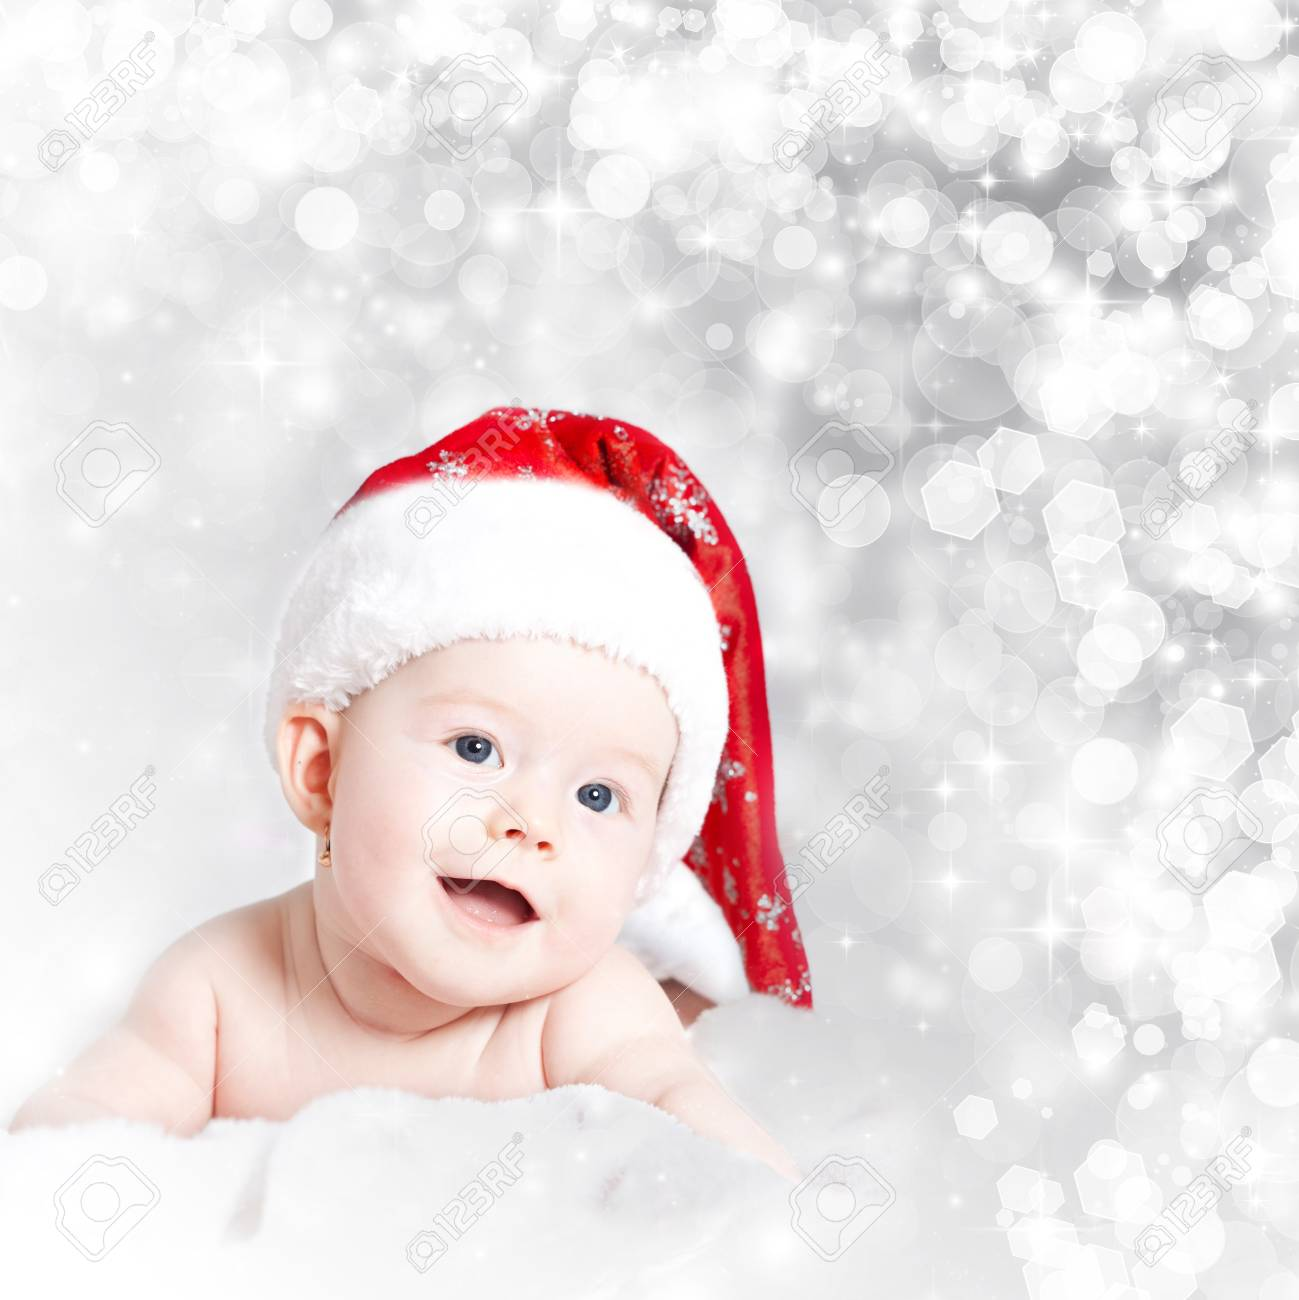 047327fc9 Portrait of a baby with Santa hat isolated on holiday